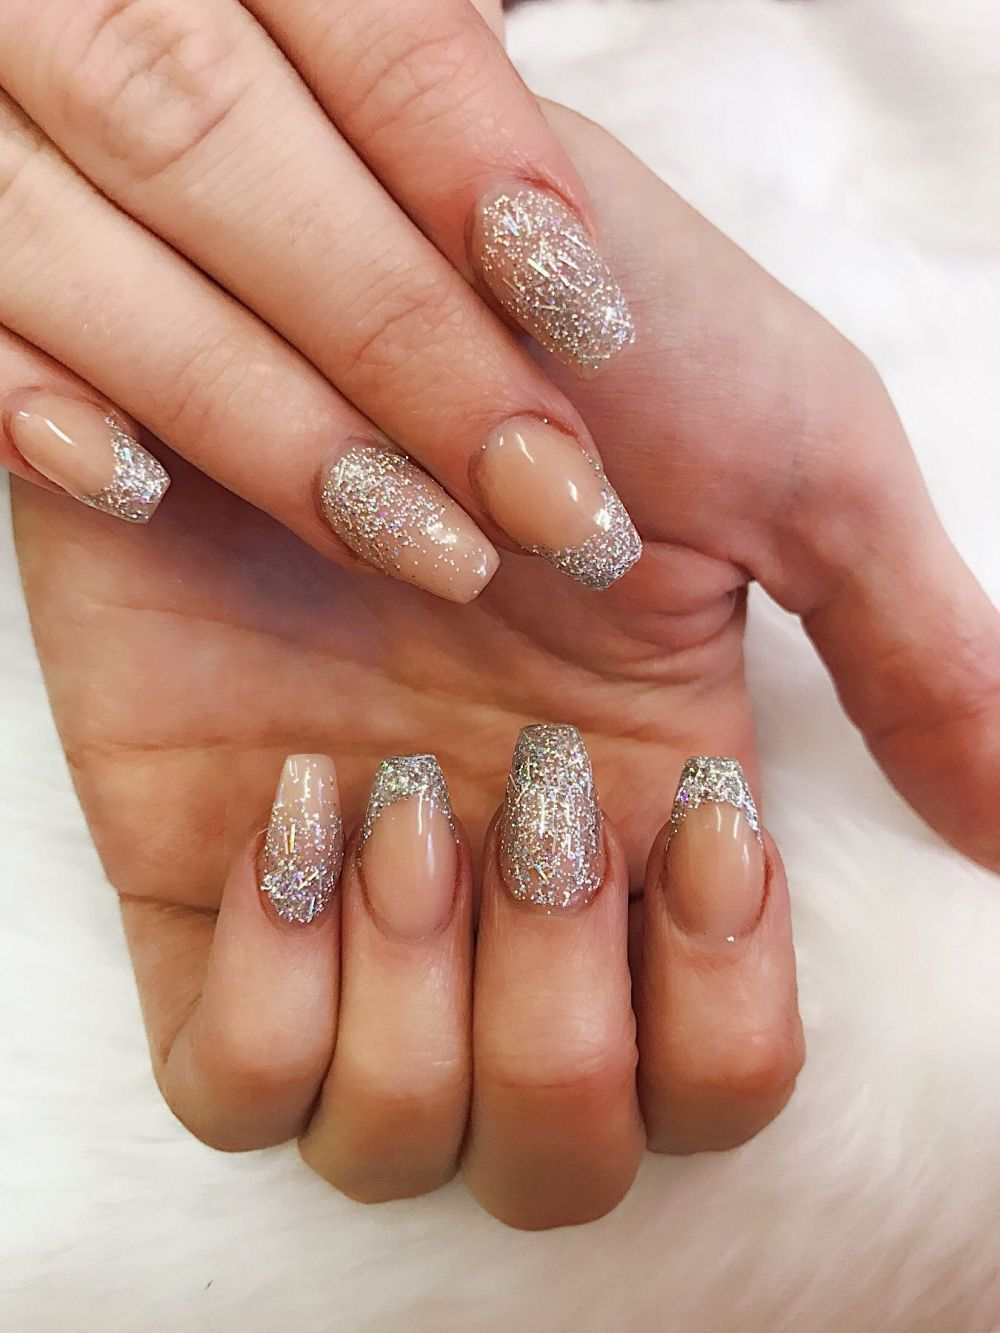 12 Luxury Acrylic Nail Extension Designs Fitnailslover